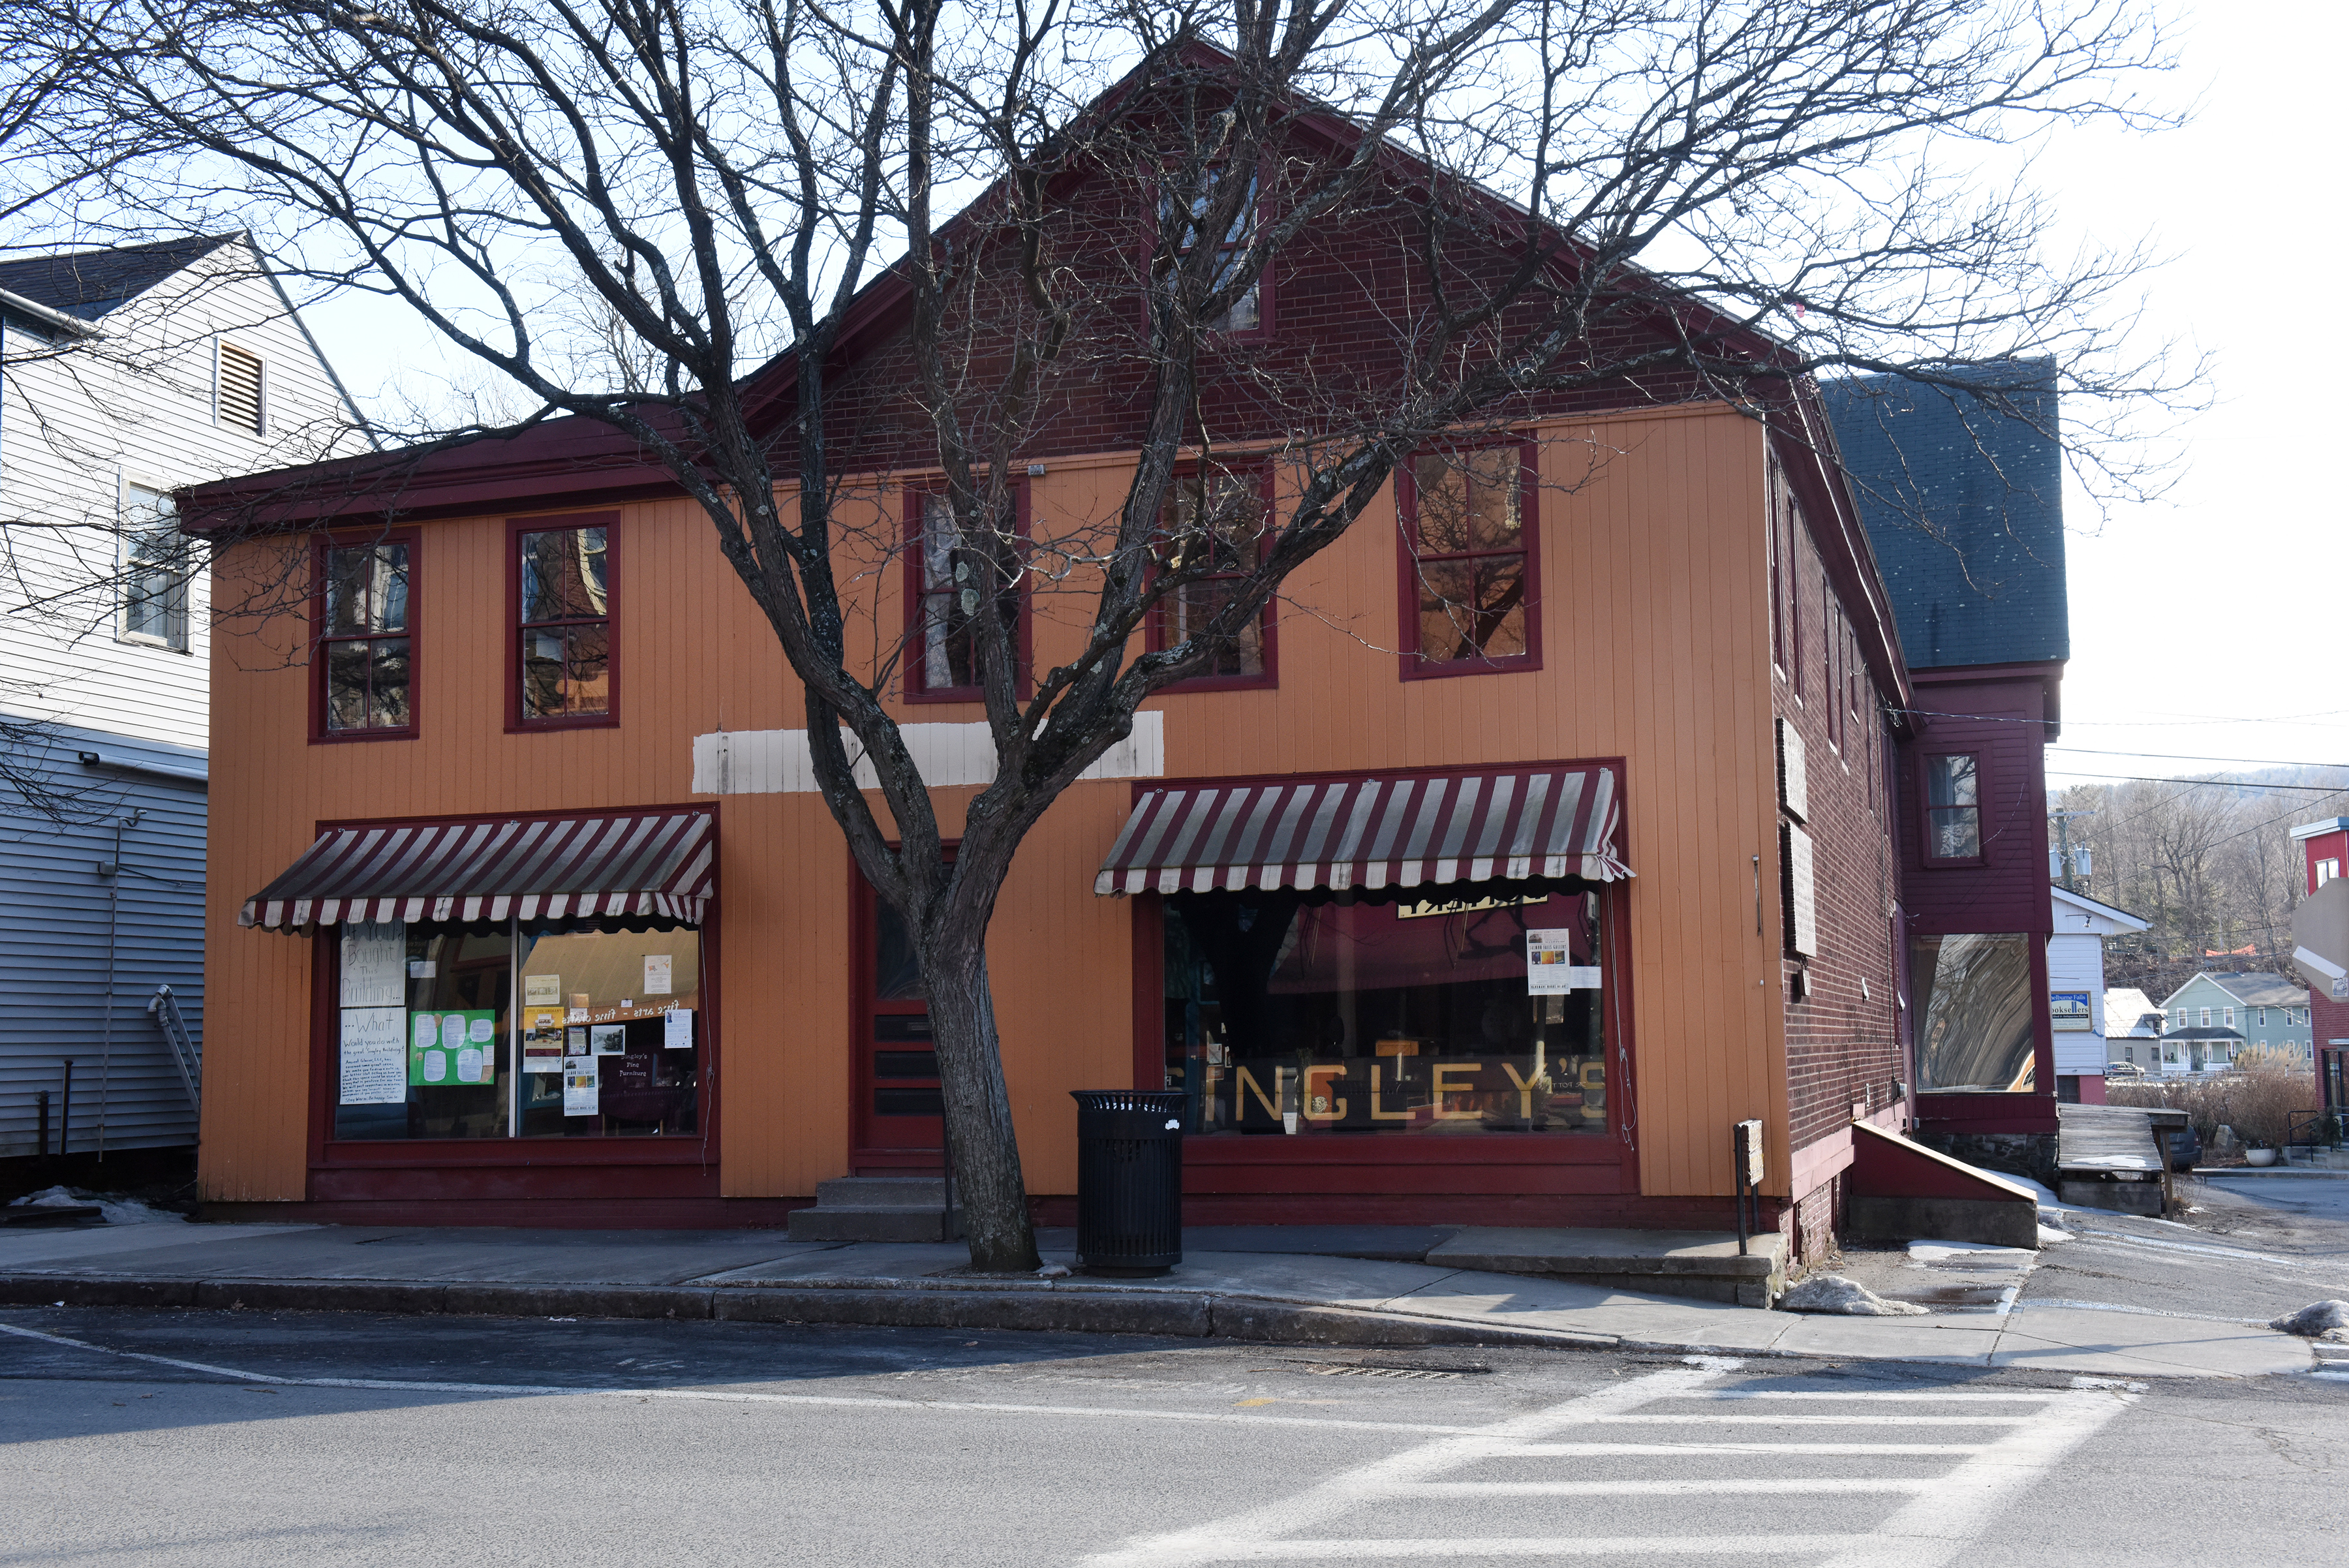 shelburne falls hispanic singles Get reviews, hours, directions, coupons and more for singley furniture inc at 19 bridge st, shelburne falls, ma search for other furniture stores in shelburne falls on ypcom.